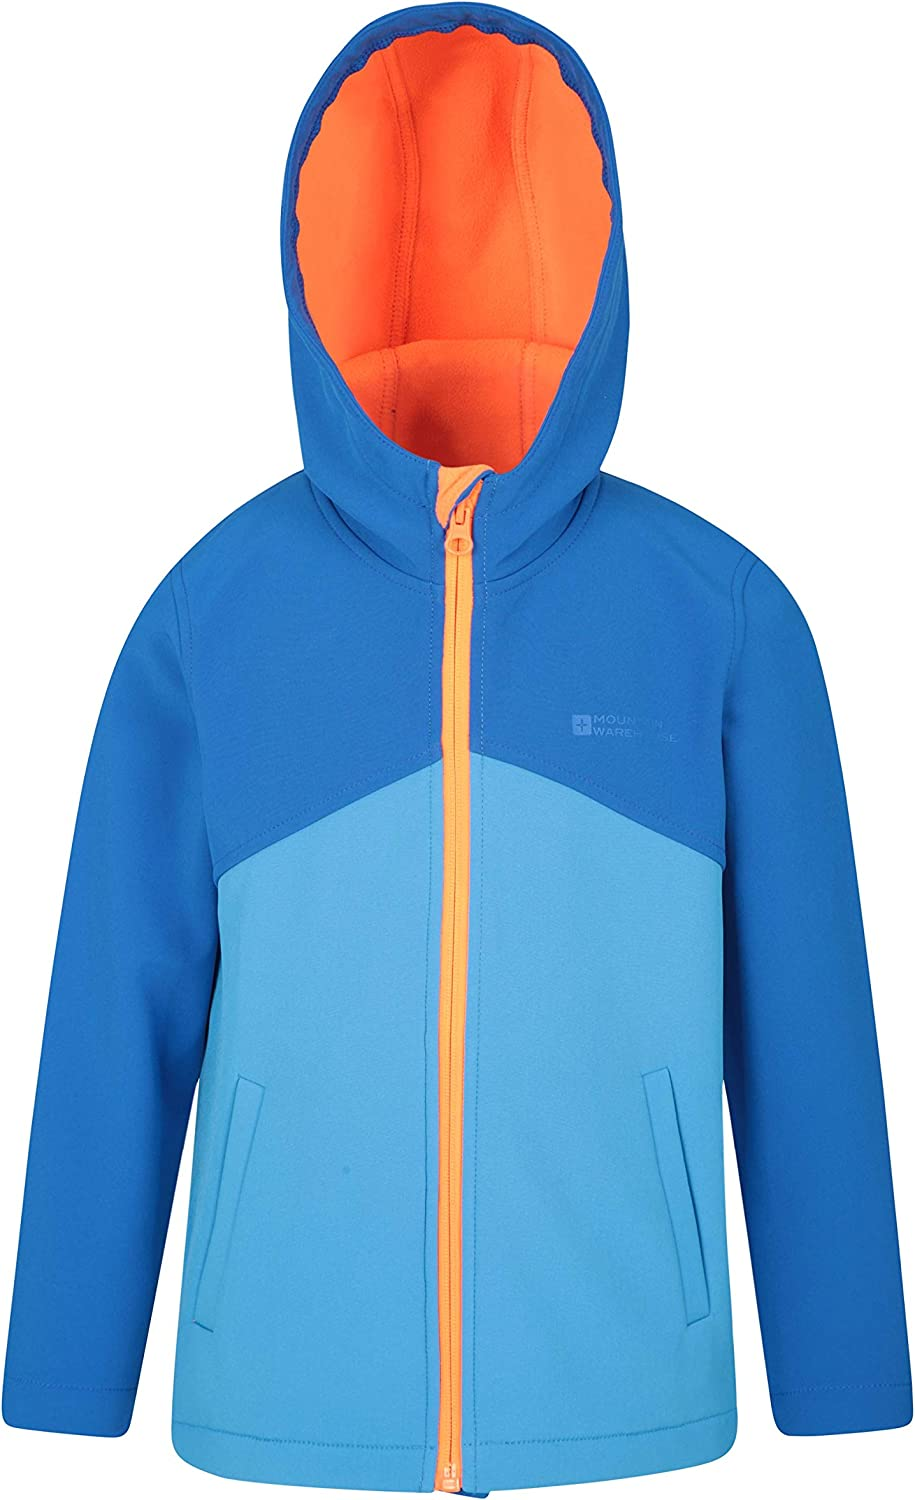 Mountain Warehouse Exodus Kids Softshell Lightweight Wind /& Water Resistant Childrens Shell Jacket Fleece Lined Hood for Travelling Orange 7-8 Years